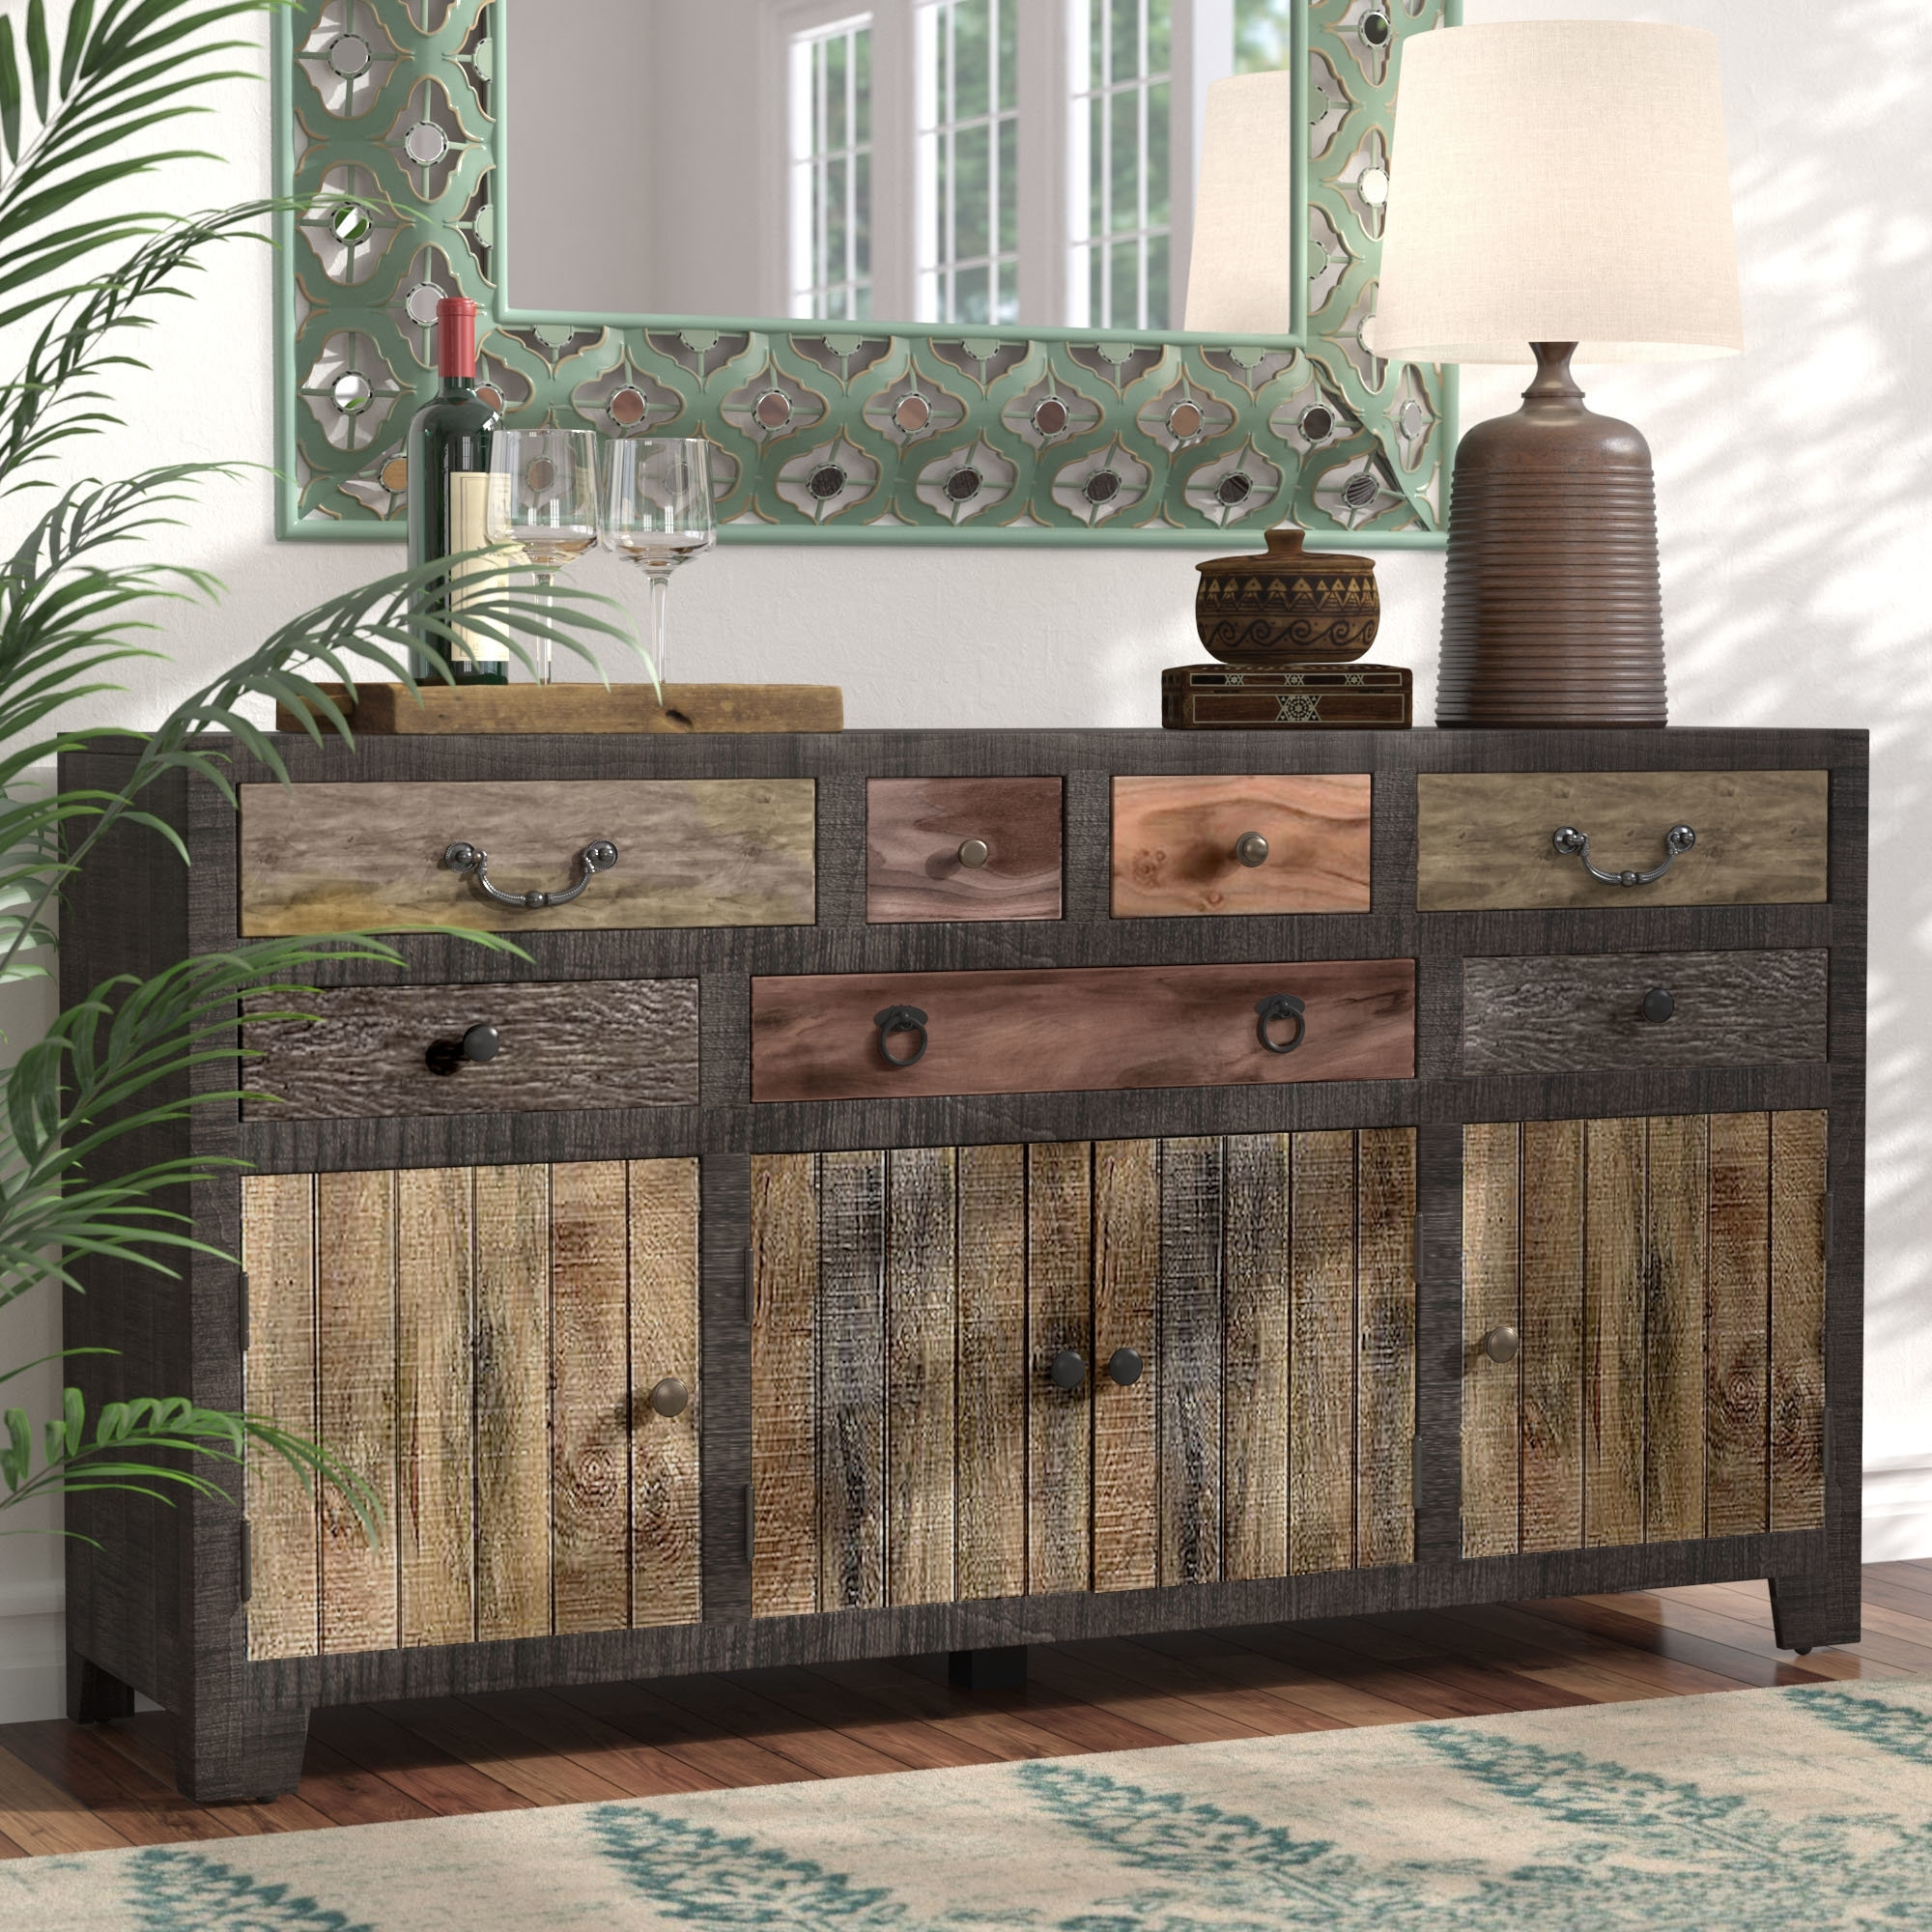 World Menagerie Moultry 7 Drawer 4 Door Sideboard & Reviews | Wayfair inside Carved 4 Door Metal Frame Sideboards (Image 30 of 30)